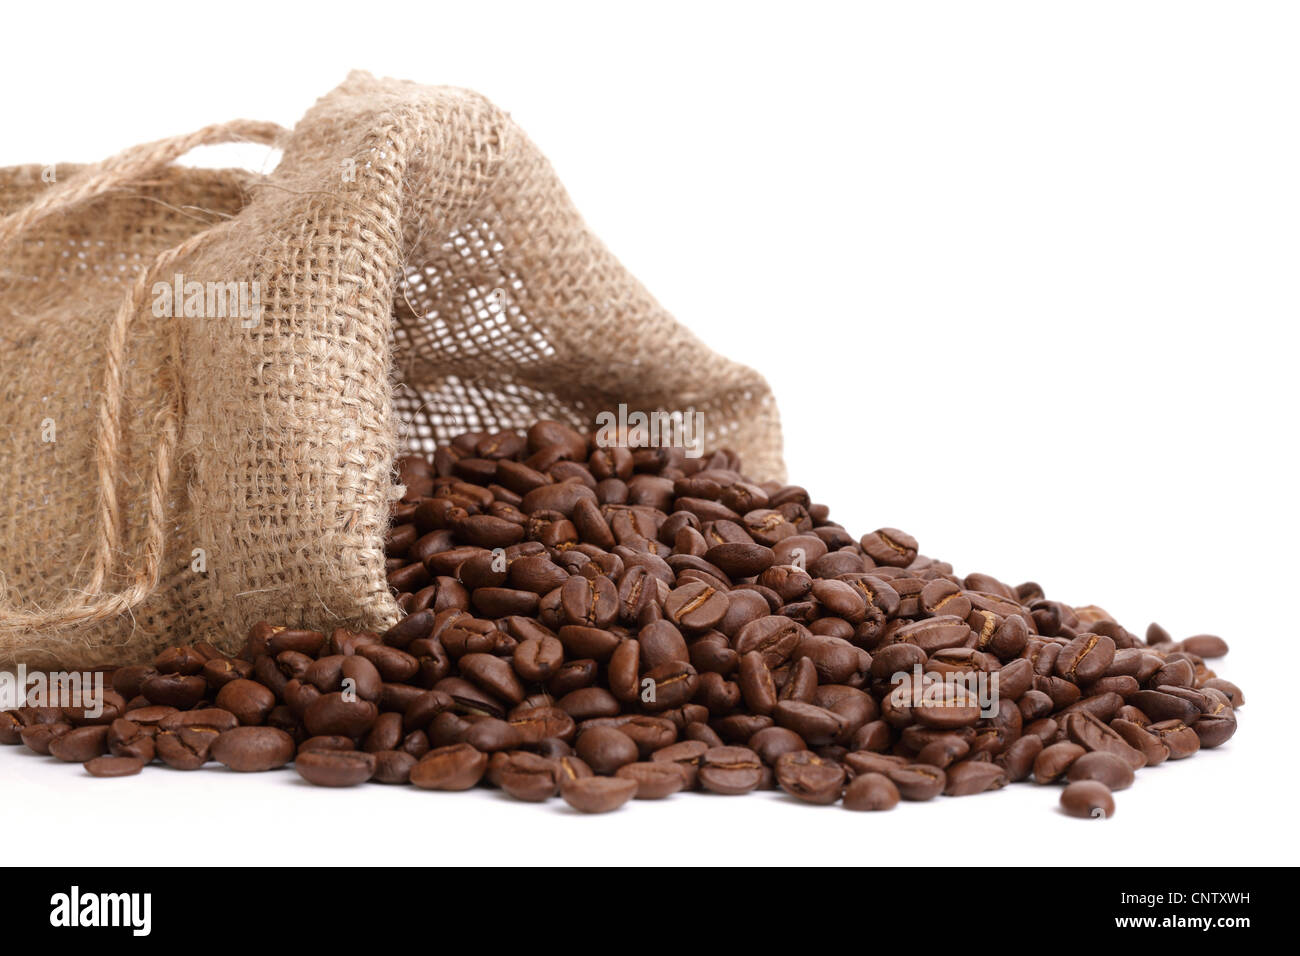 Coffee beans overflowing - Stock Image